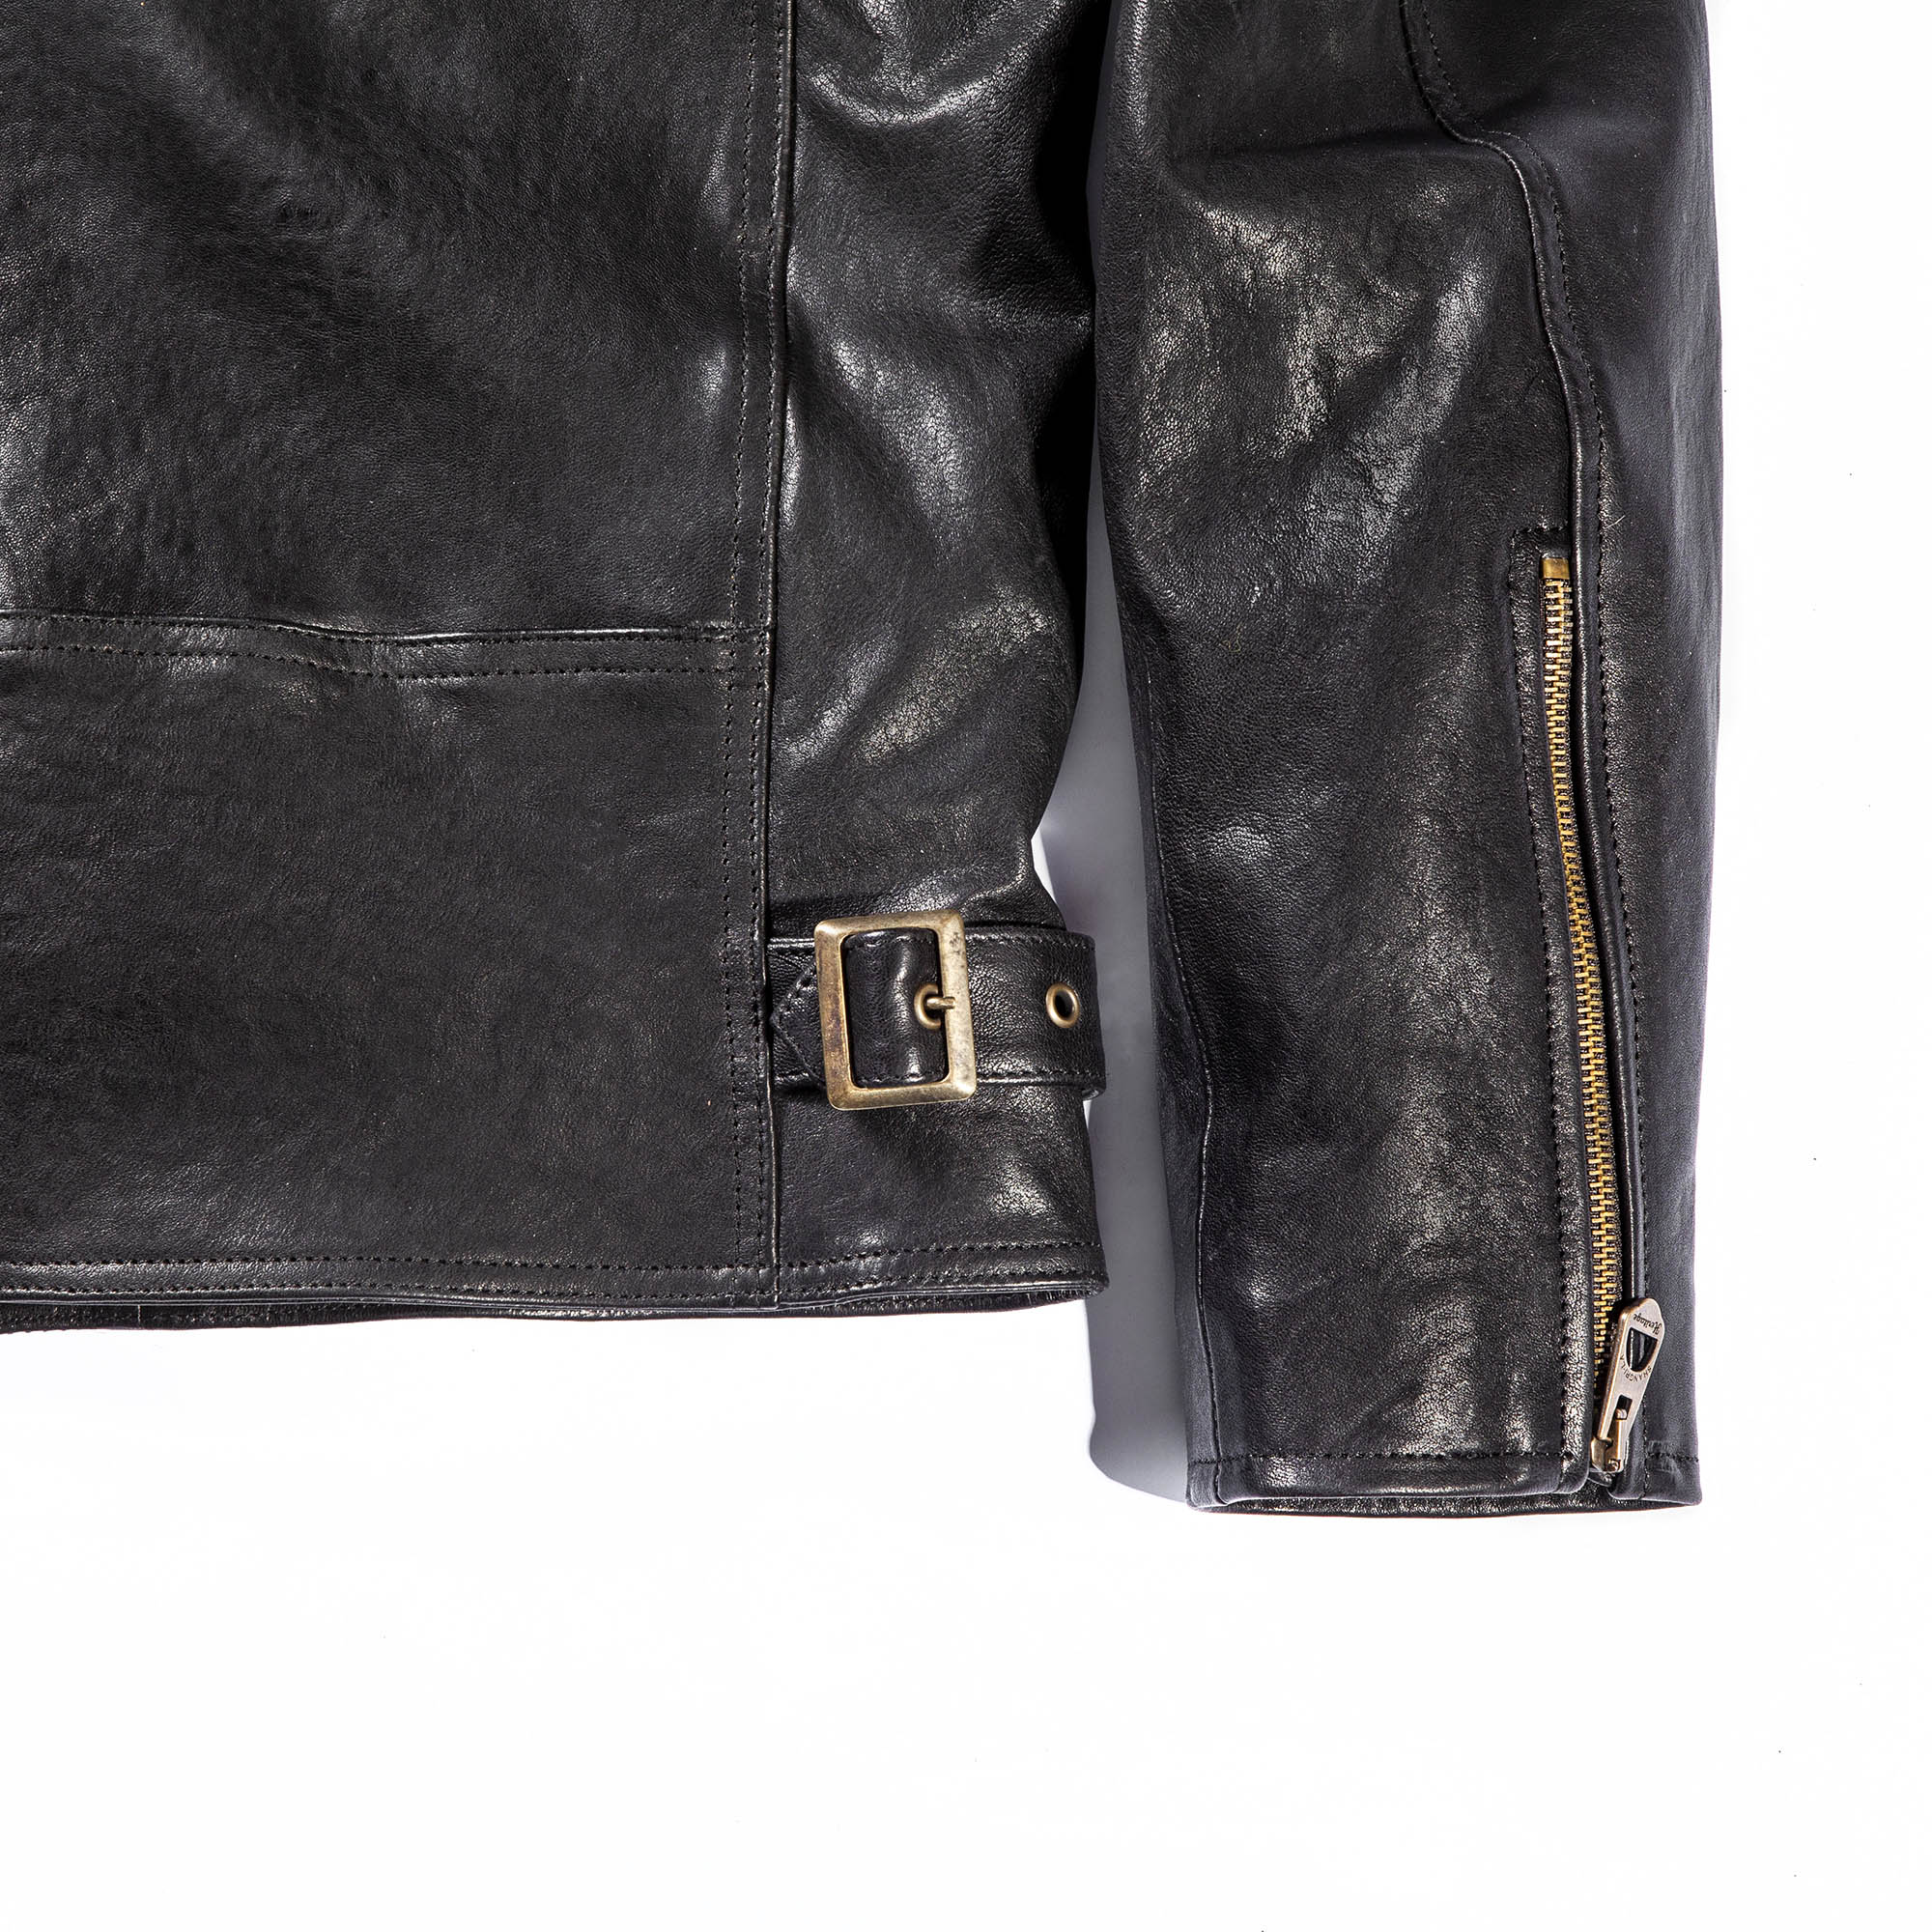 shangri-la-heritage-cafe-racer-black-lambskin-jacket-still-life-back-bottom